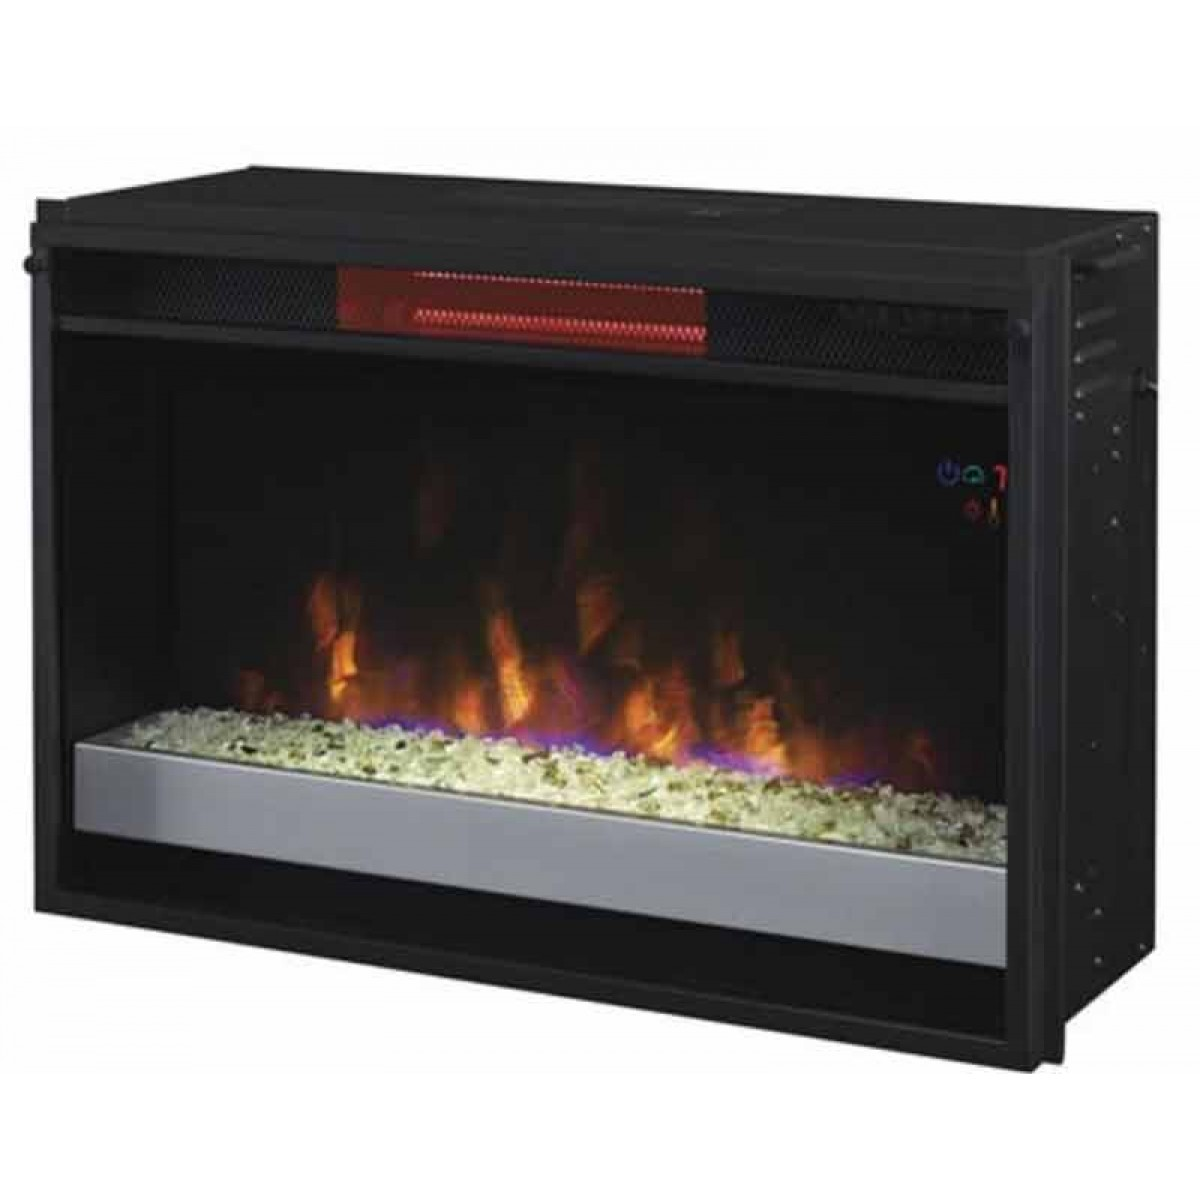 Classic Flame 26ii310grg 201 26 Spectrafire Plus Infrared Contemporary Insert With Safer Plug